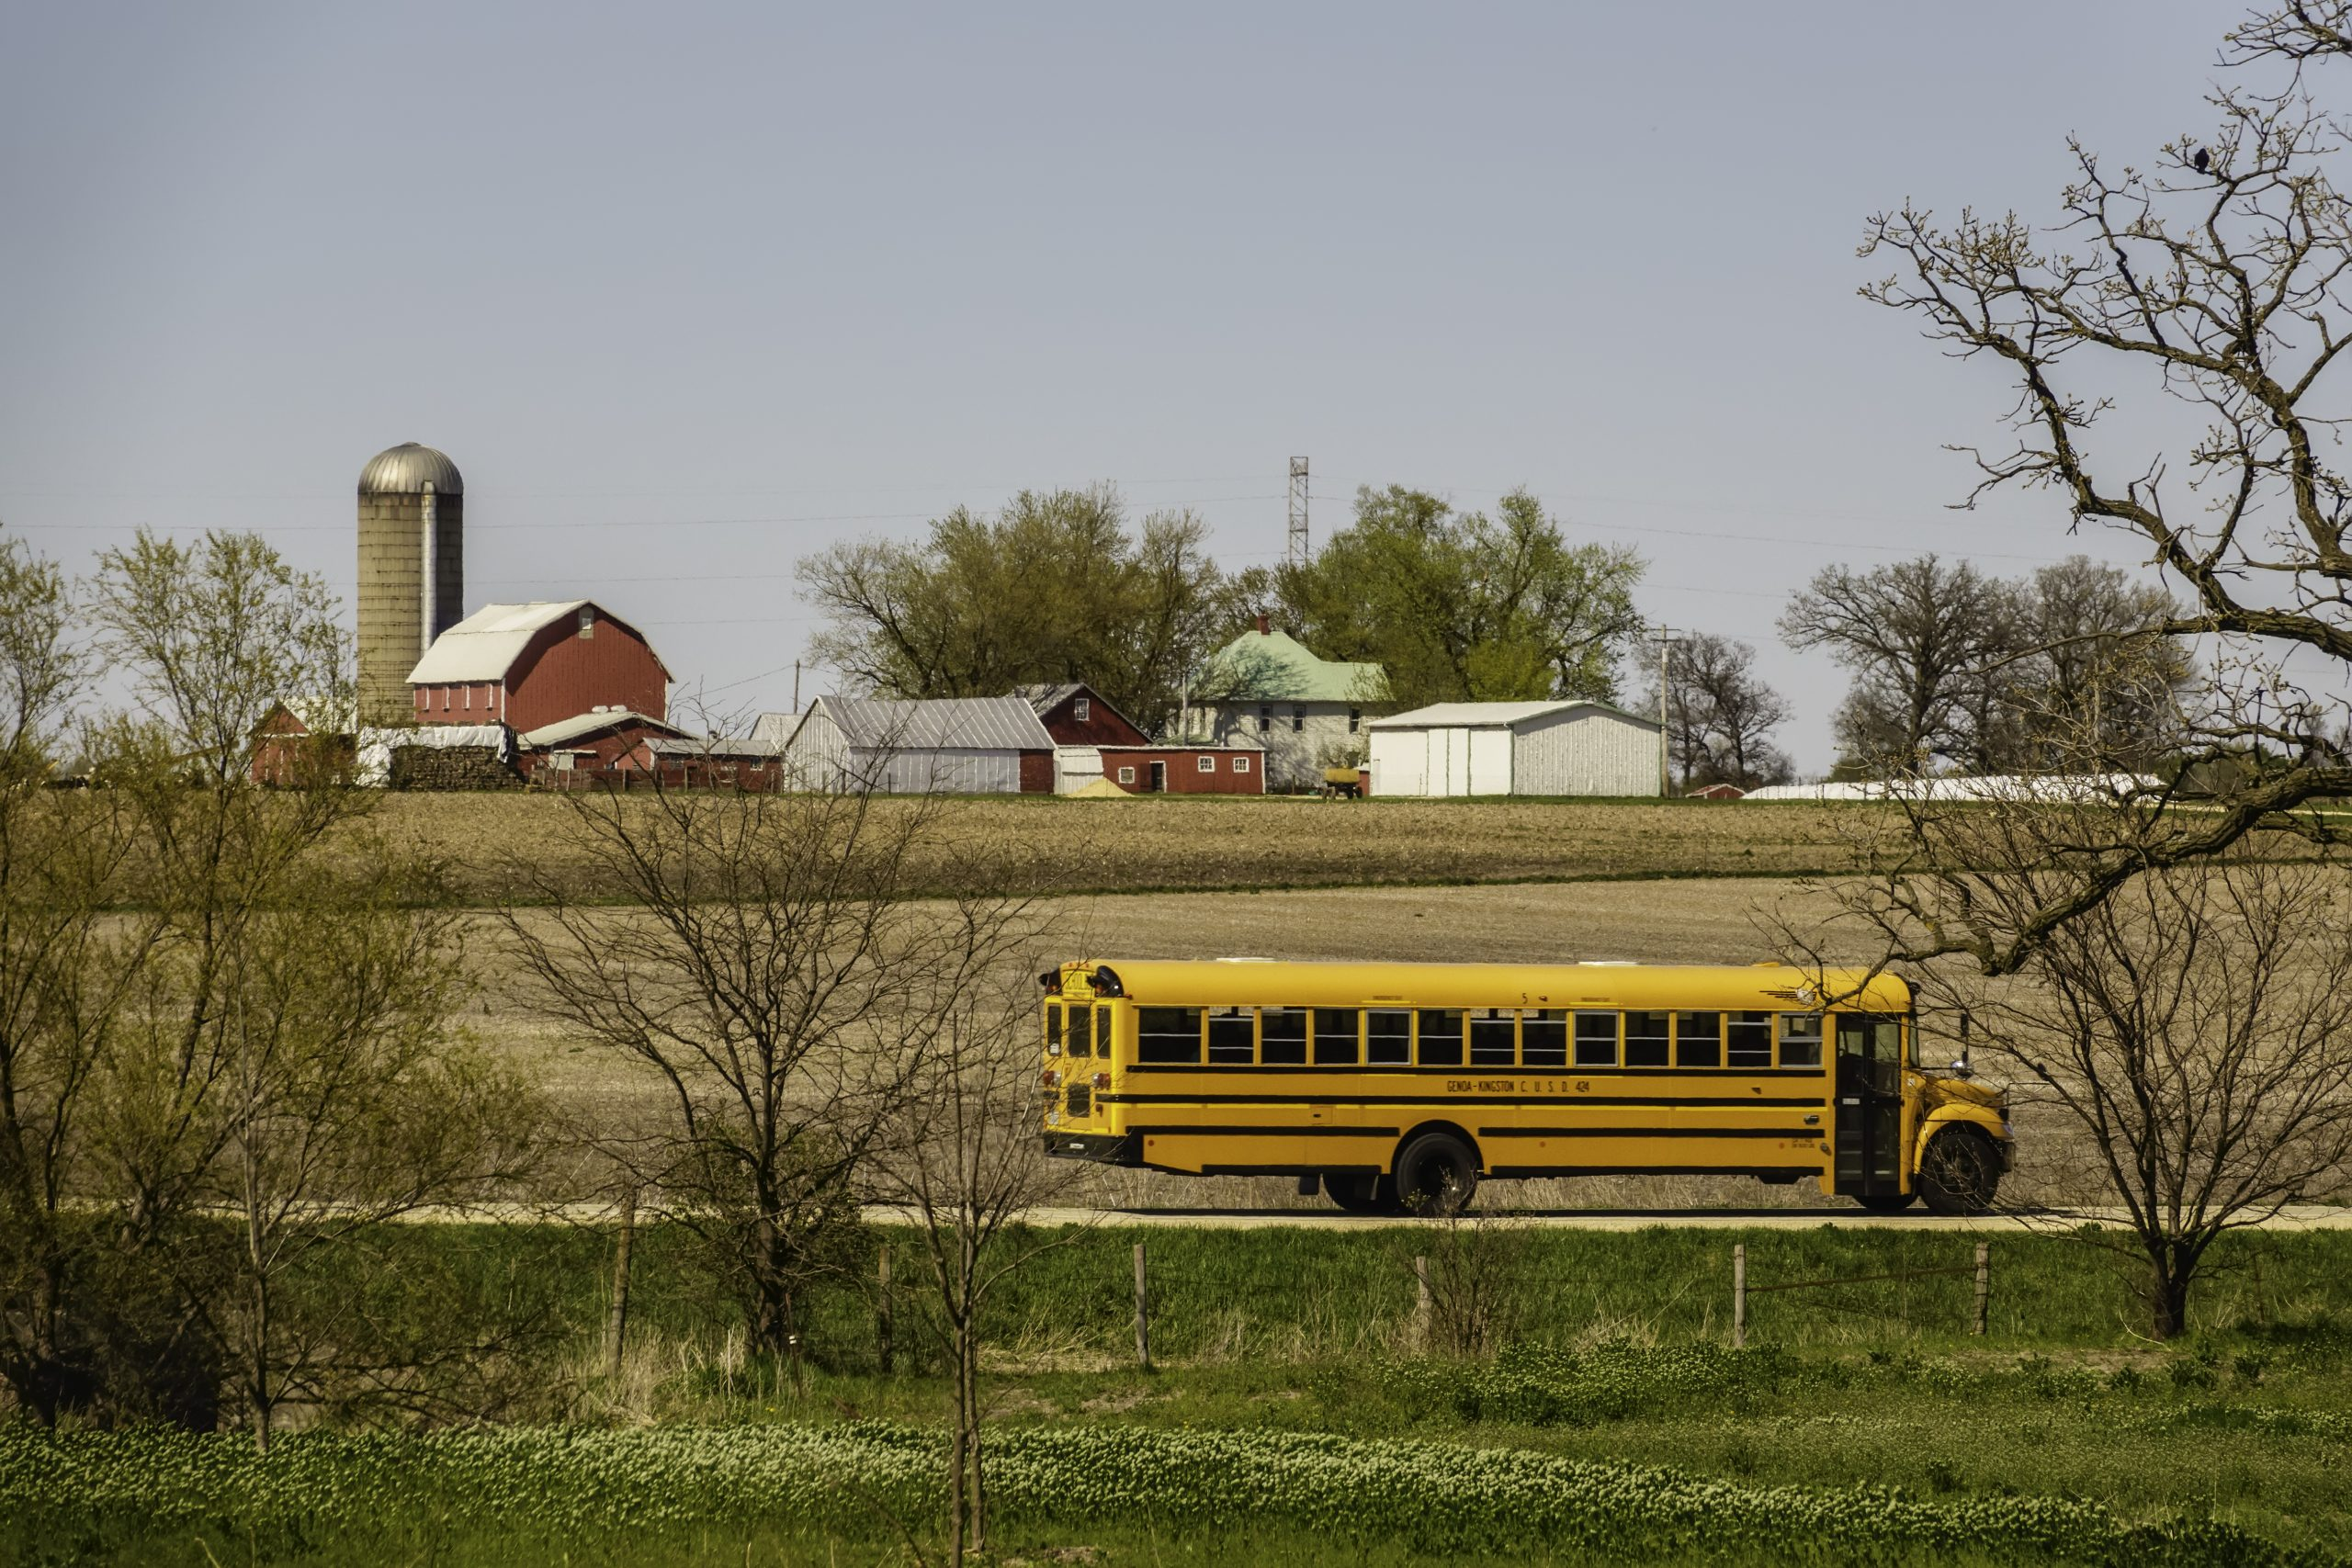 School bus in rural area